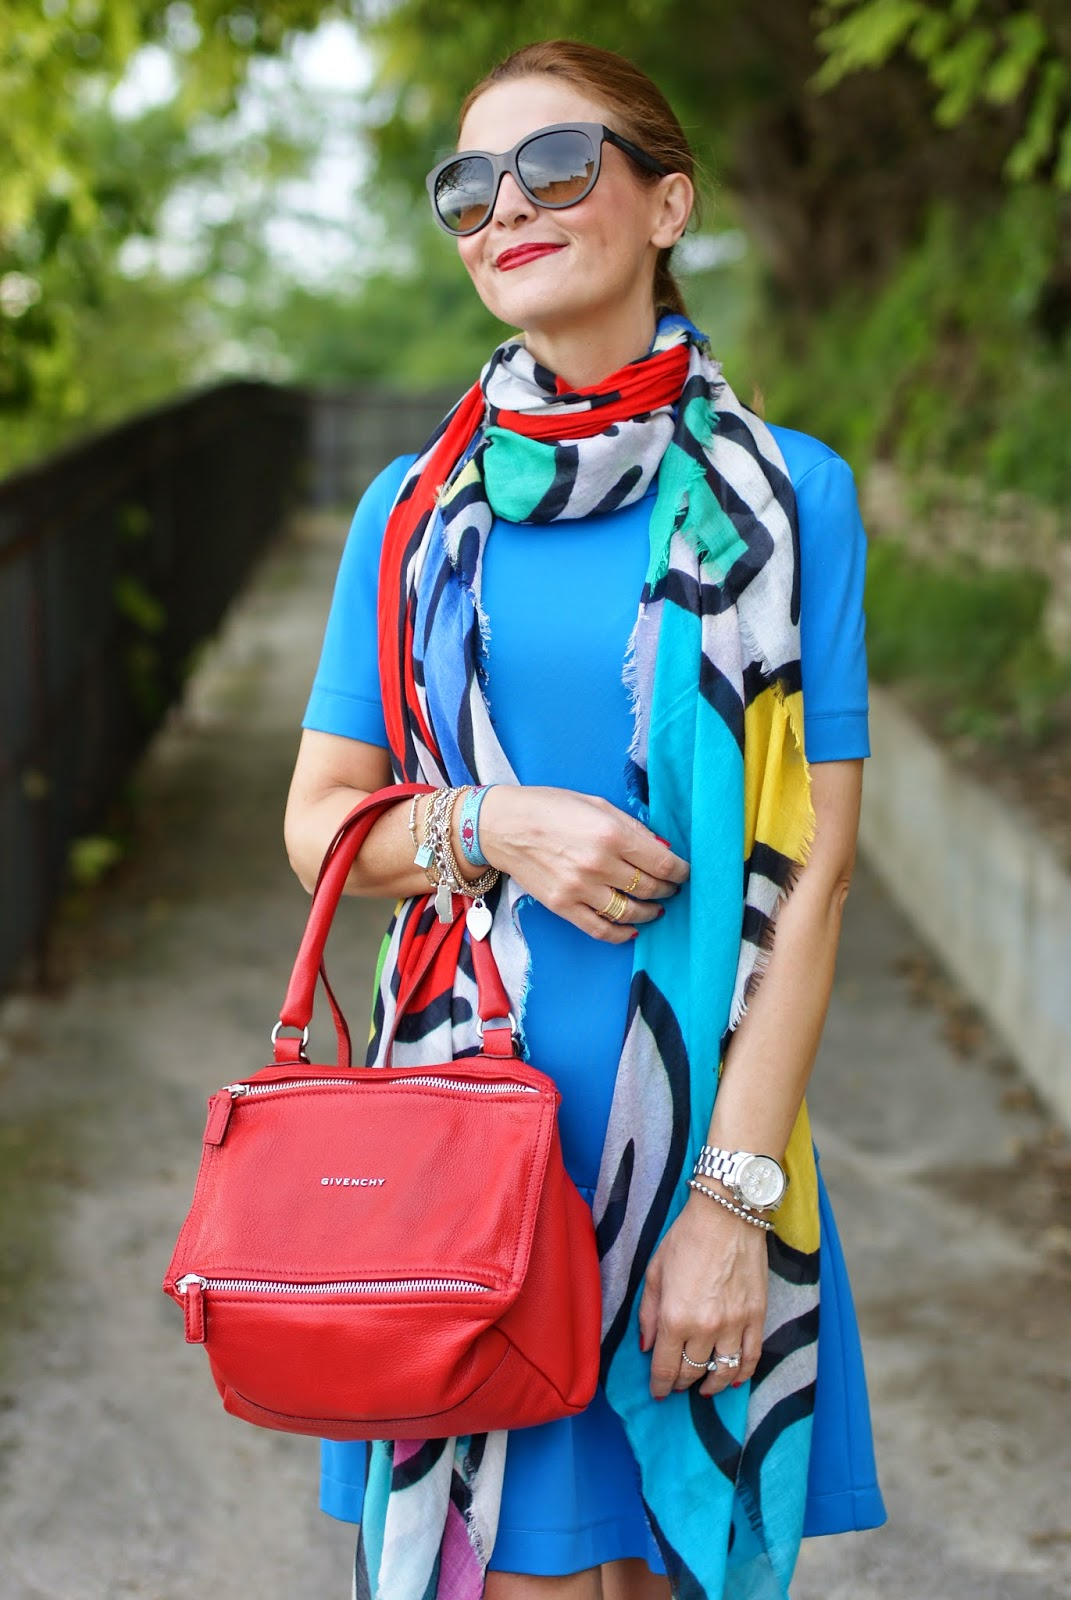 Ruco Line sneakers, Givenchy Pandora red bag, Ruco Line new collection Fall Winter 2014 2015, Tessitura Lancioni scarf, Fashion and Cookies, fashion blogger